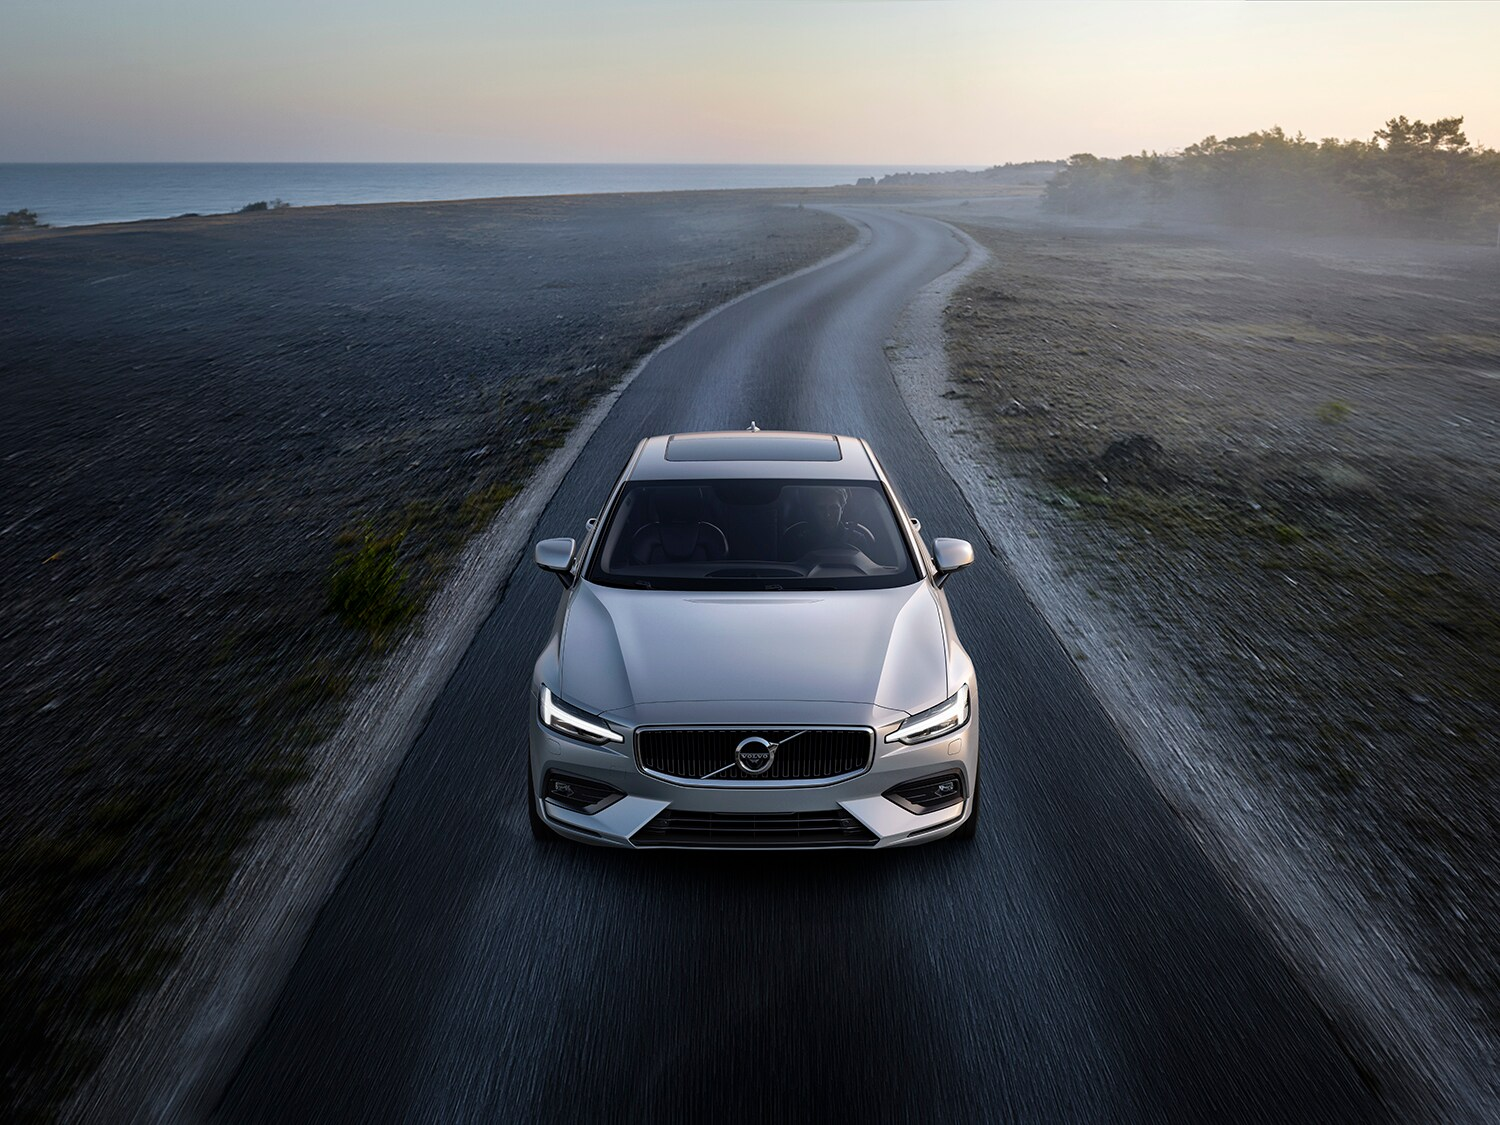 The new Volvo S60 Momentum, driving along a deserted coastal road